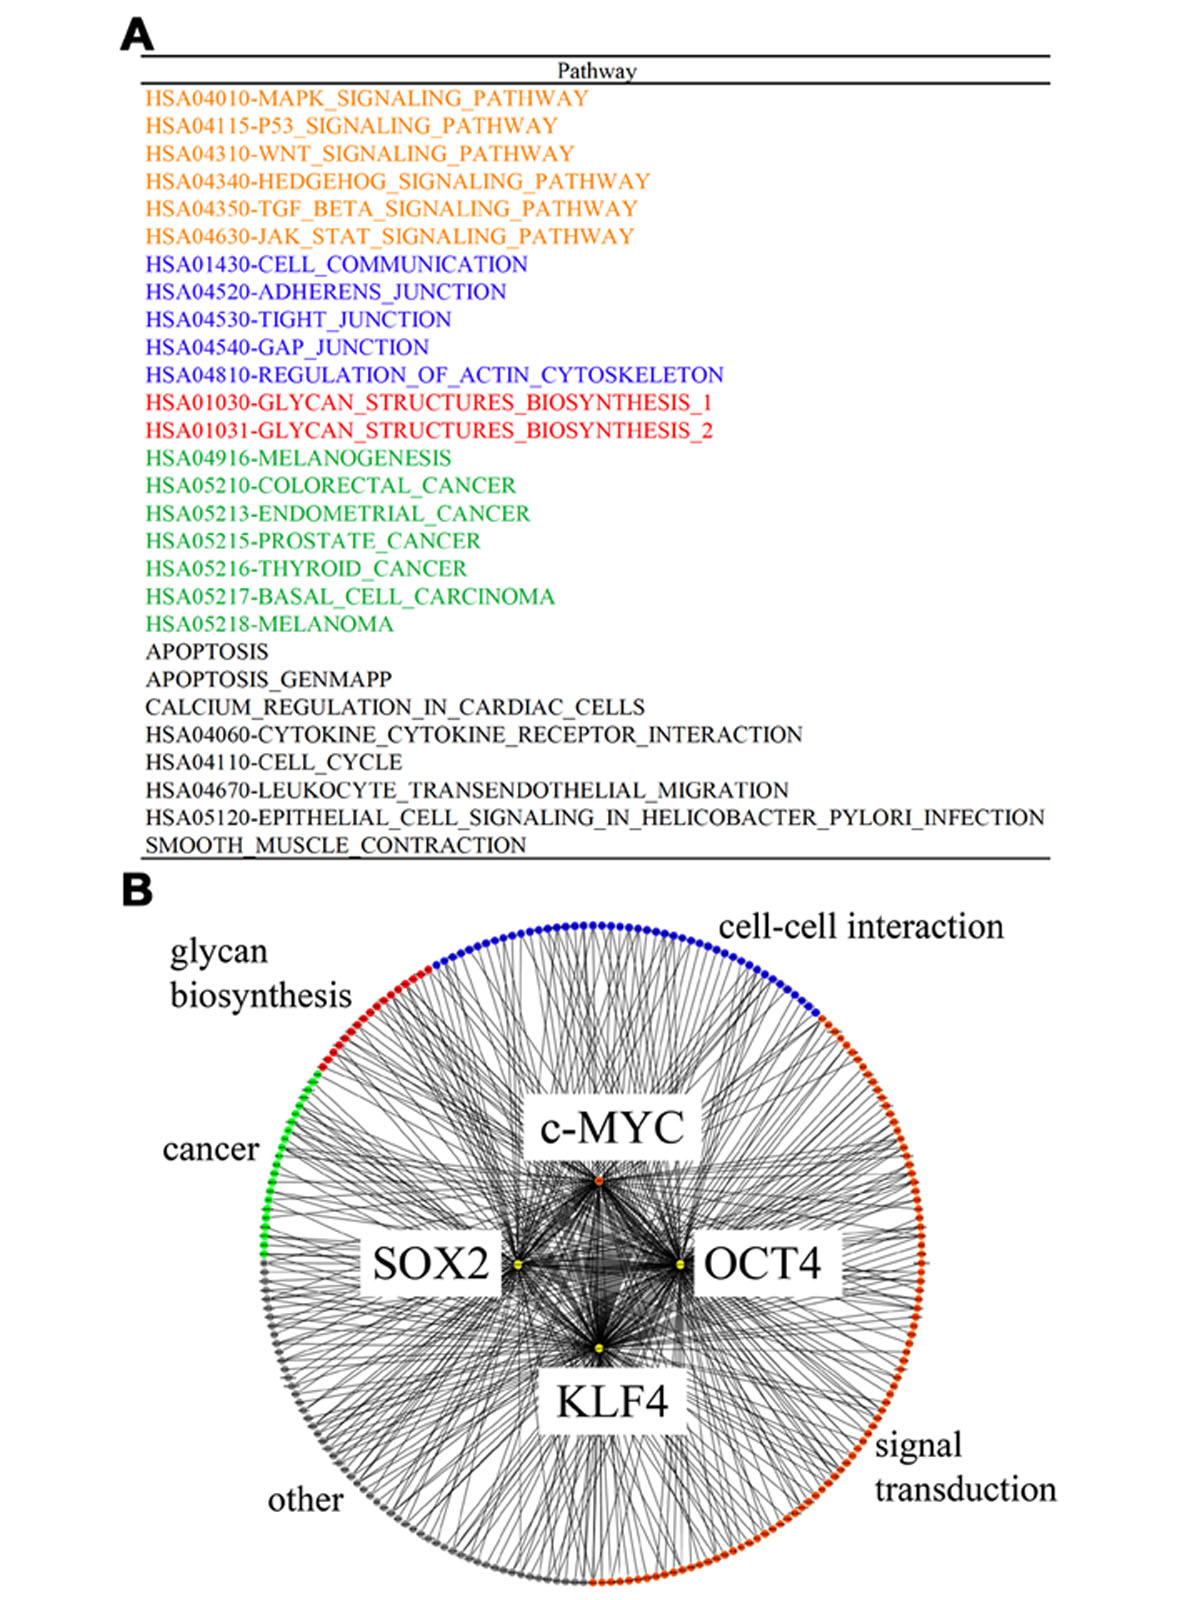 https://static-content.springer.com/image/art%3A10.1186%2F1752-0509-5-S1-S17/MediaObjects/12918_2011_Article_684_Fig3_HTML.jpg